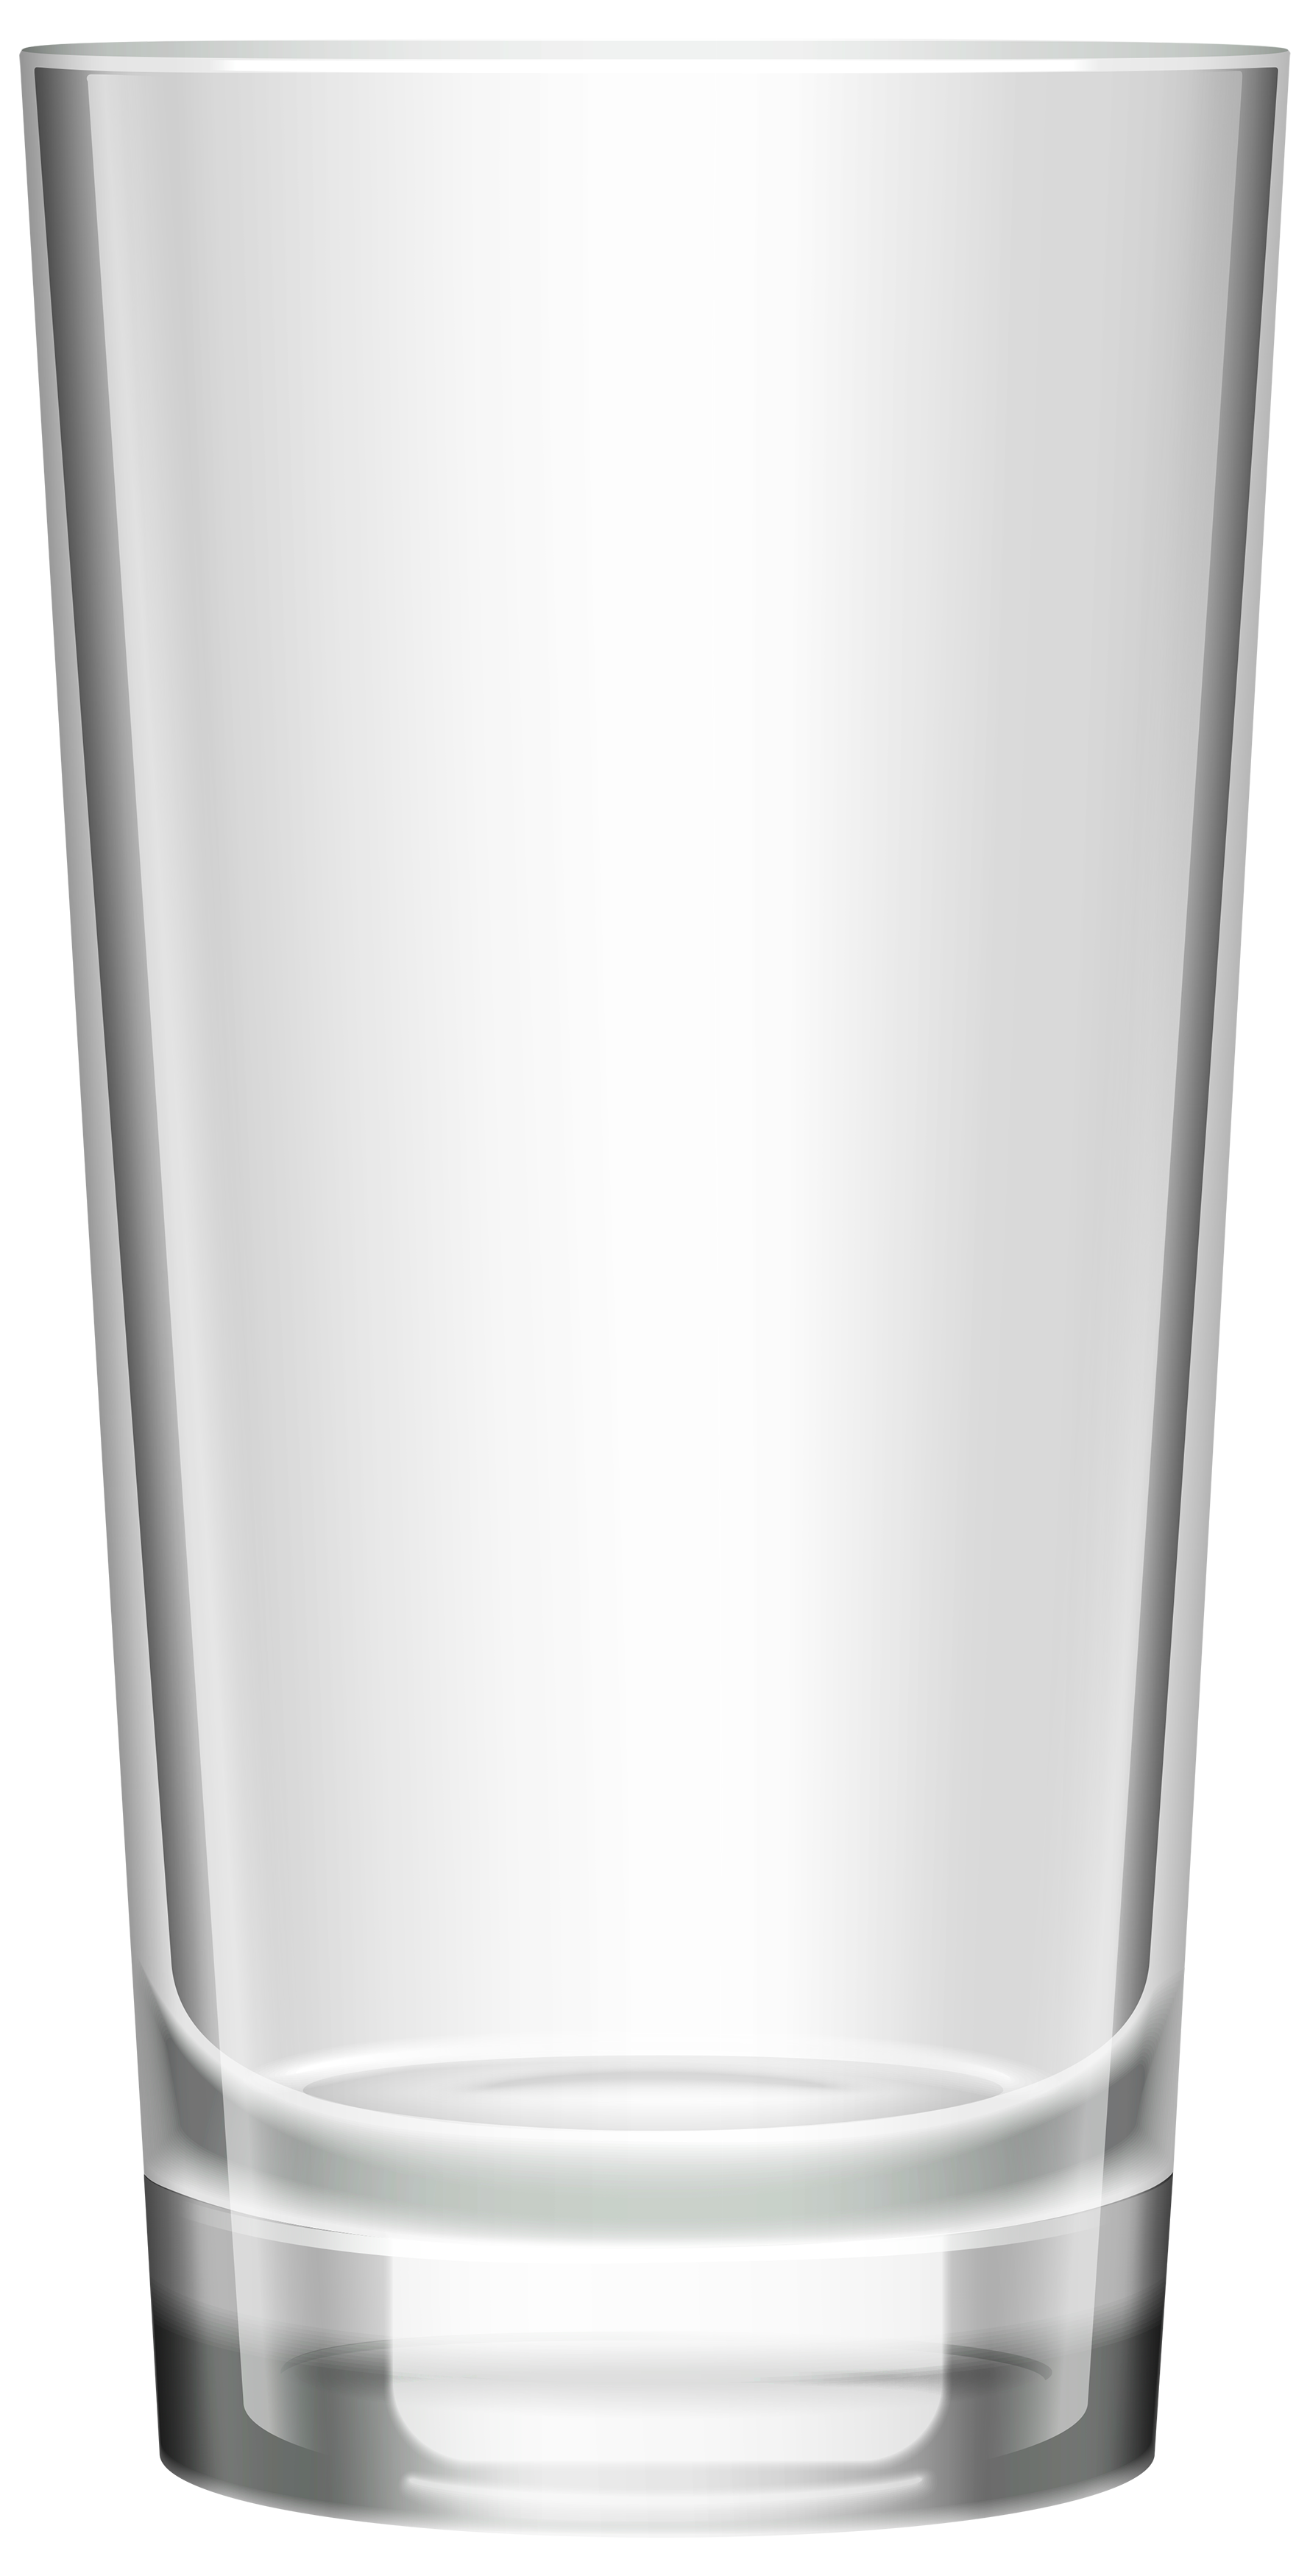 Money in glass cup clipart picture freeuse Glass PNG Clipart - Best WEB Clipart picture freeuse